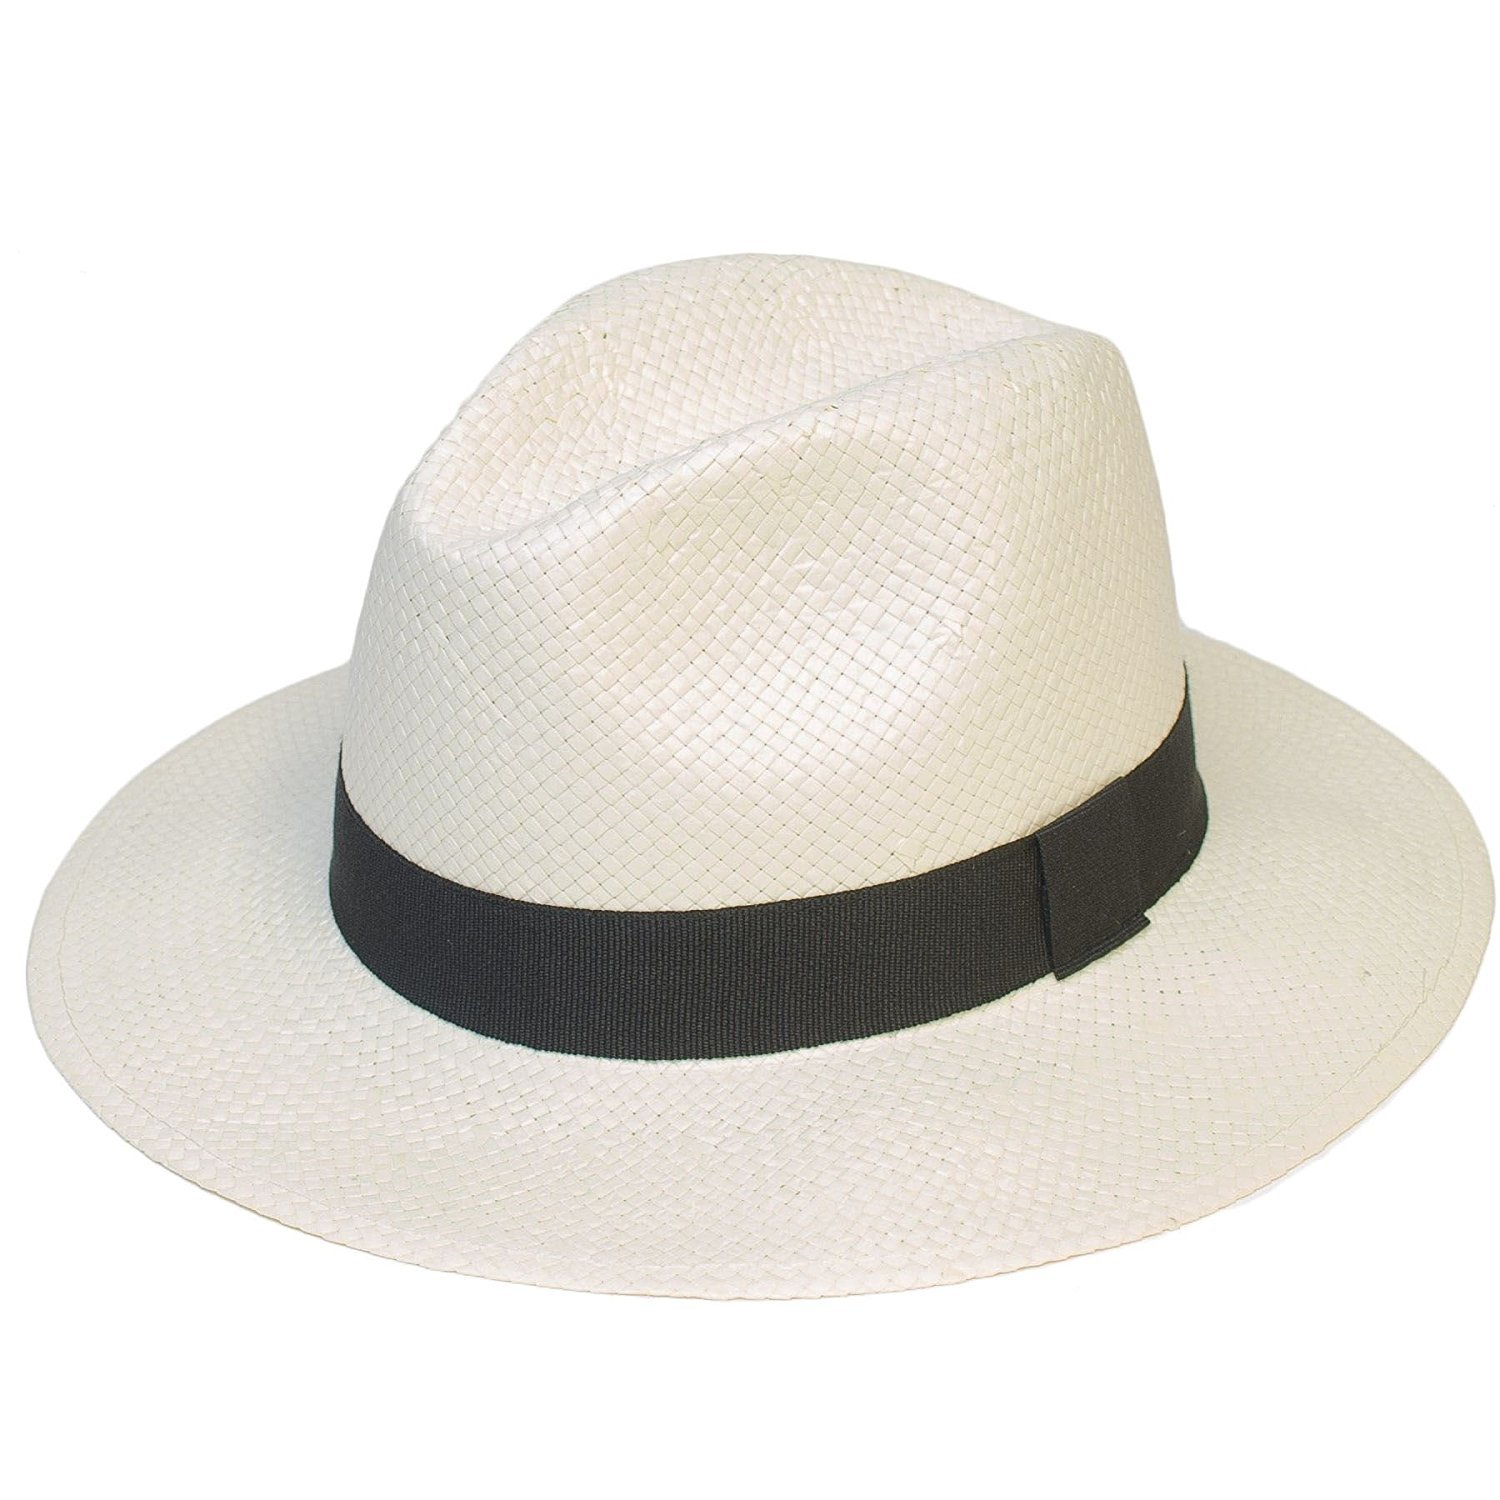 Mens Women Ladies Unisex Summer Plain Woven Panama Hat With Black Band d2d Hats 3321-3369